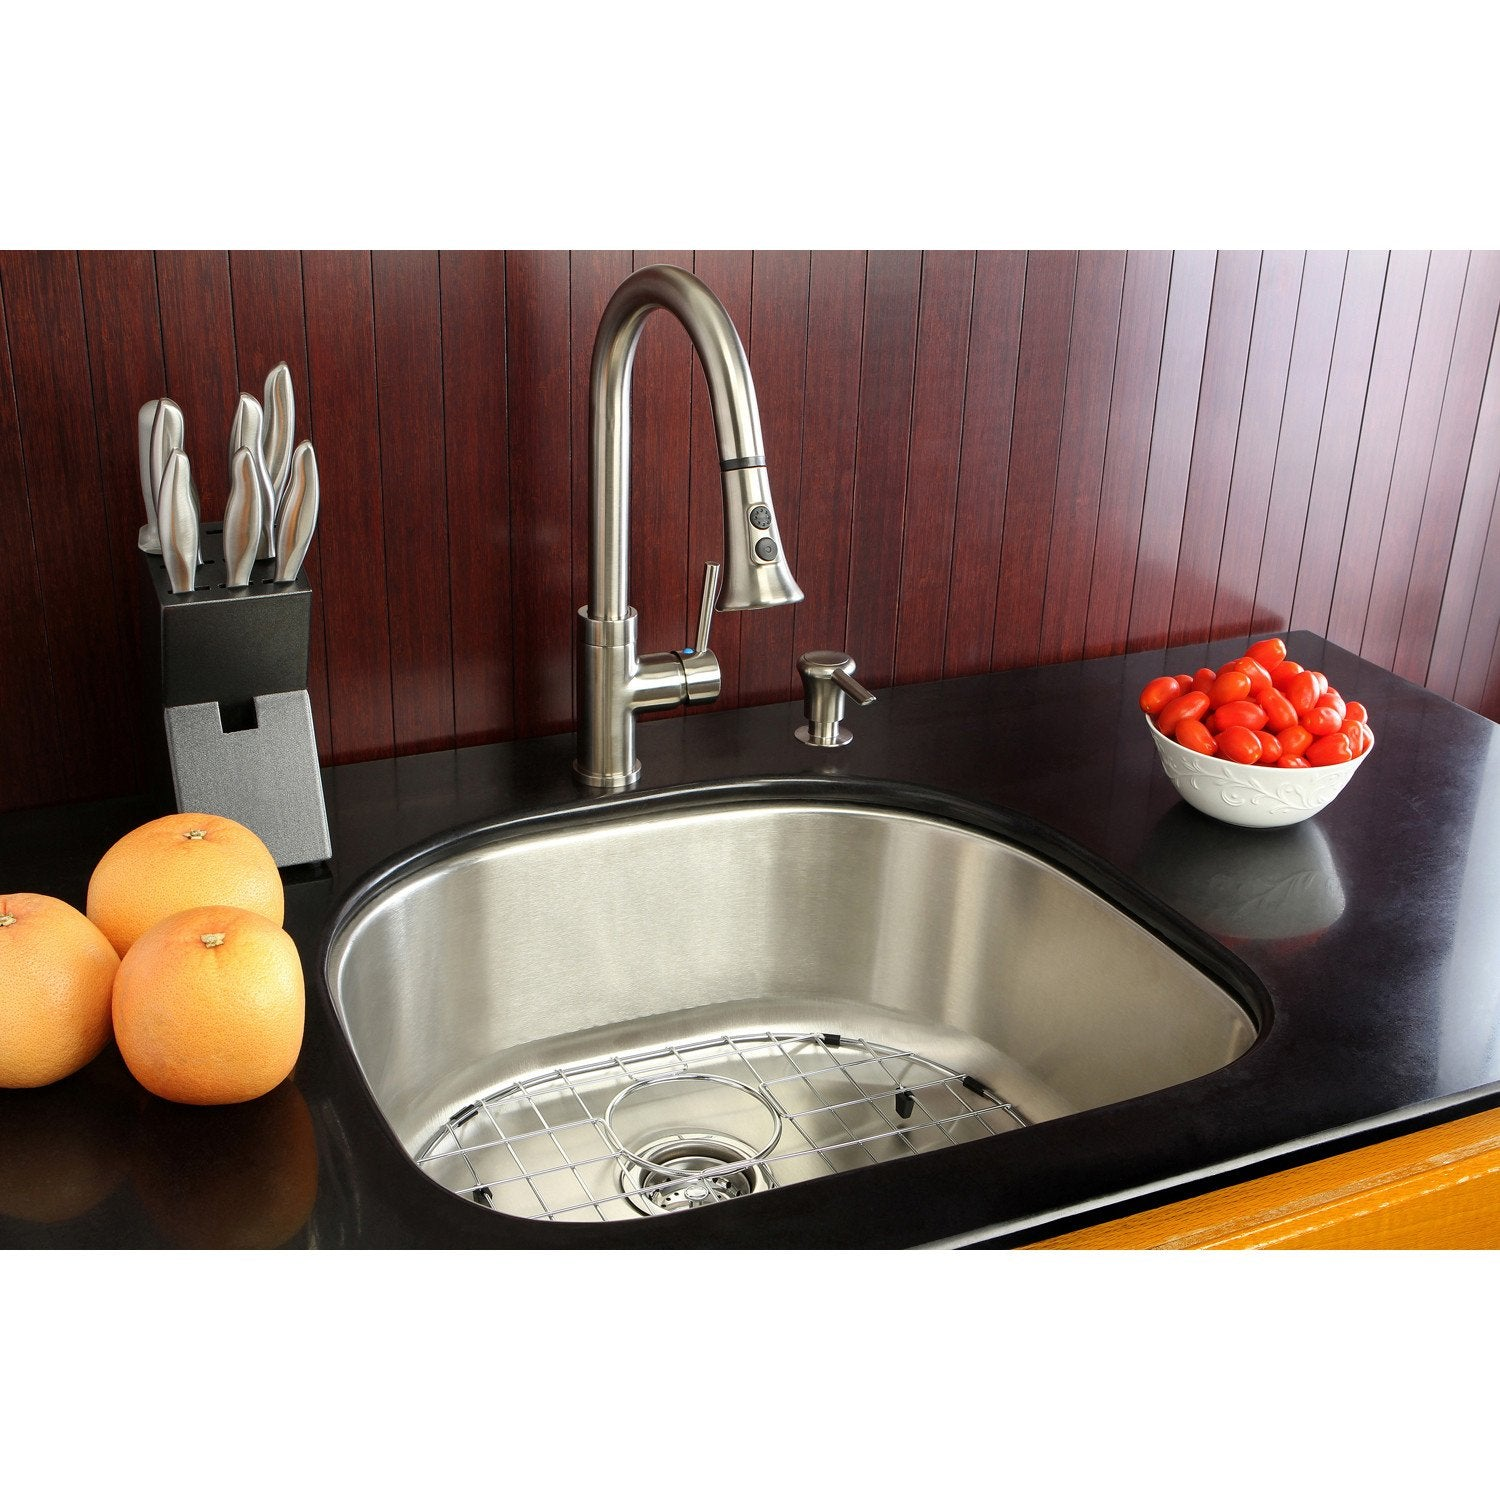 Undermount 1 Bowl Kitchen Sink Faucet Combo W Strainer Grid